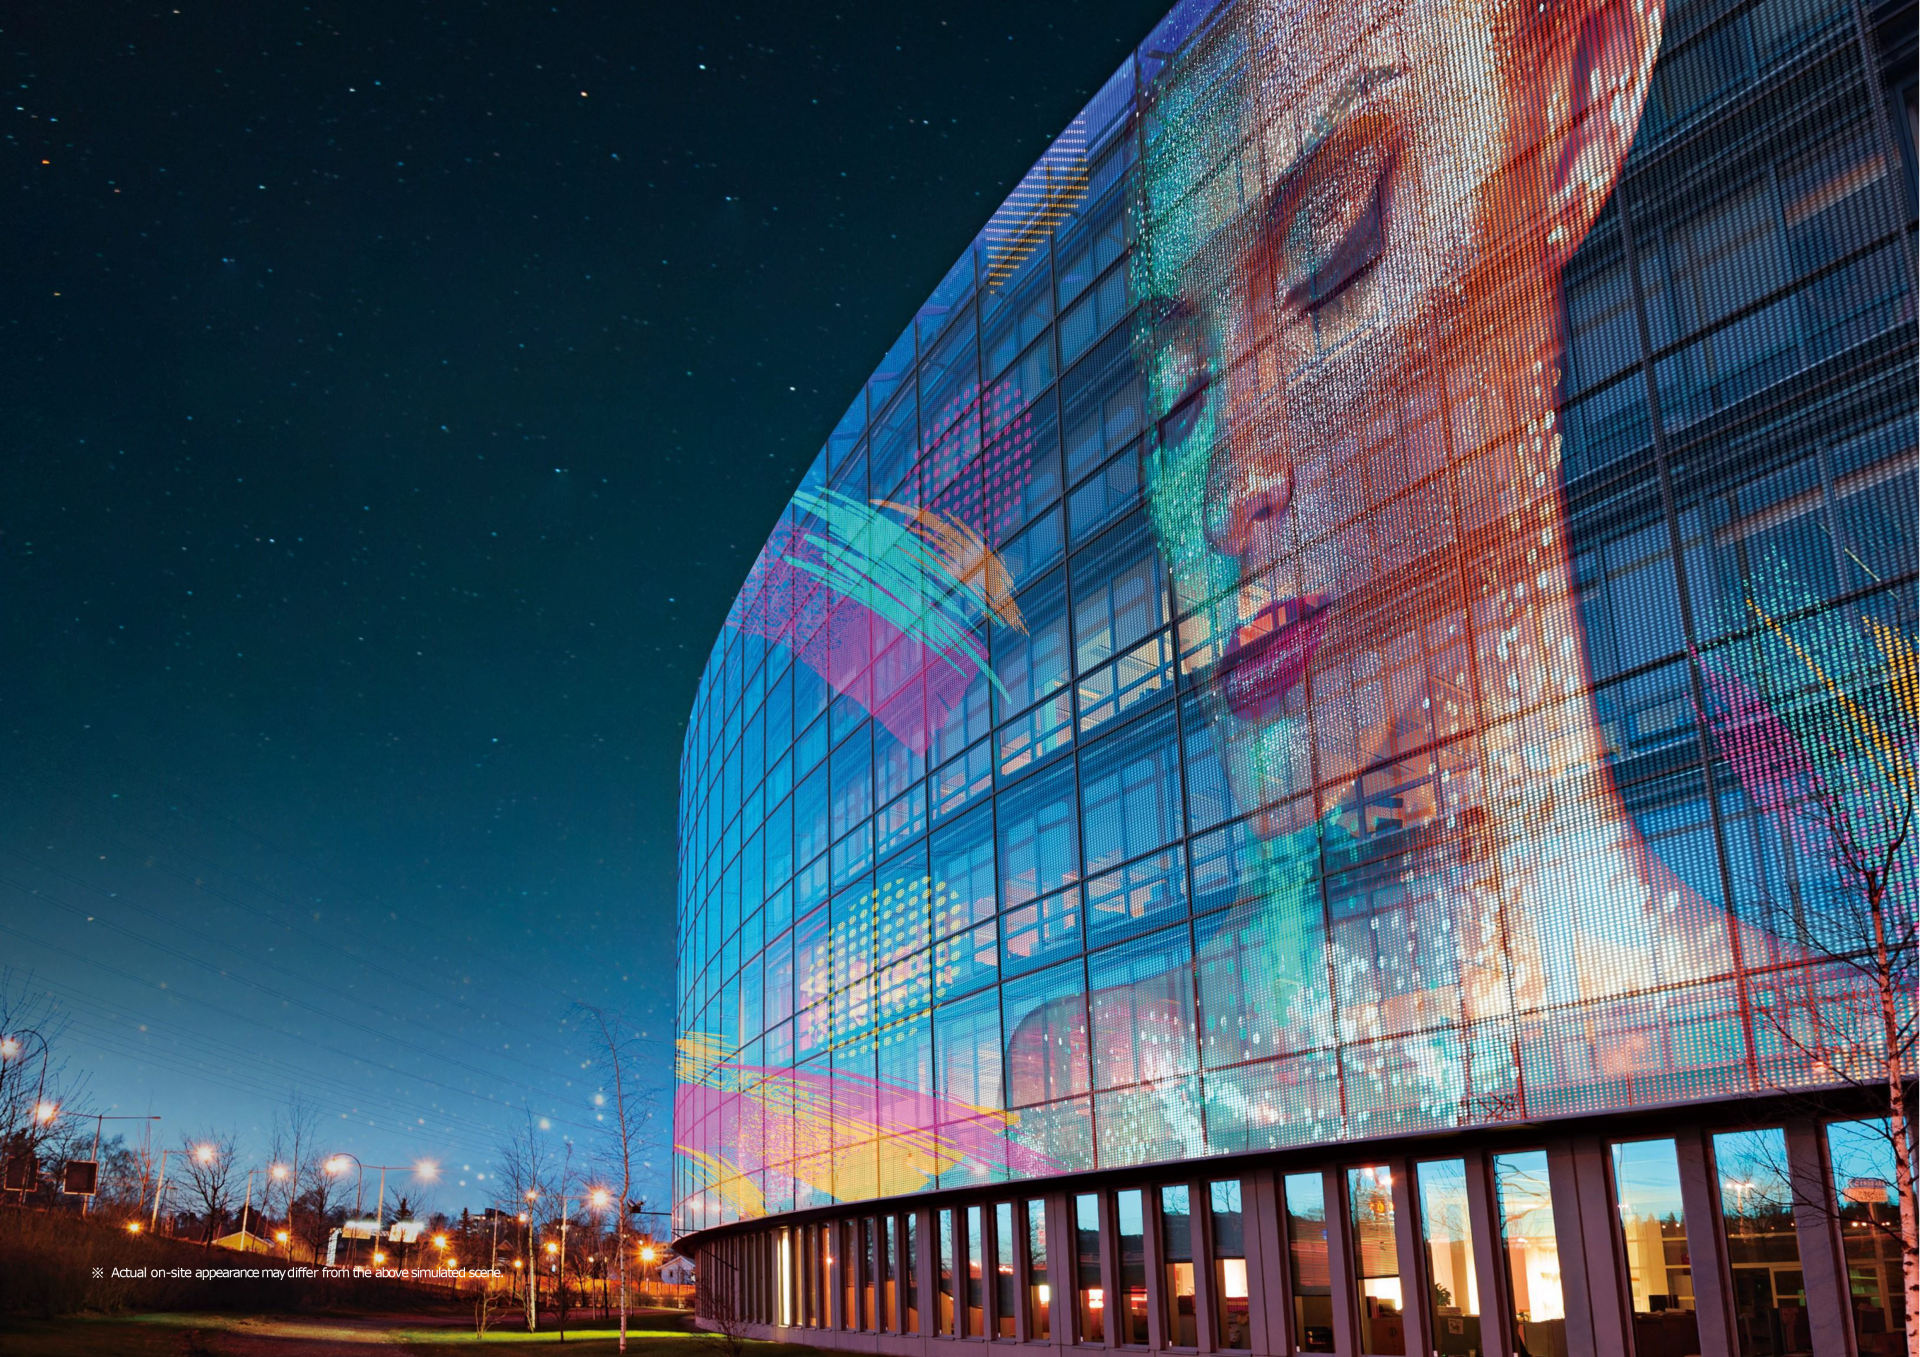 Enhancing Marketing Campaigns with Transparent LED Films